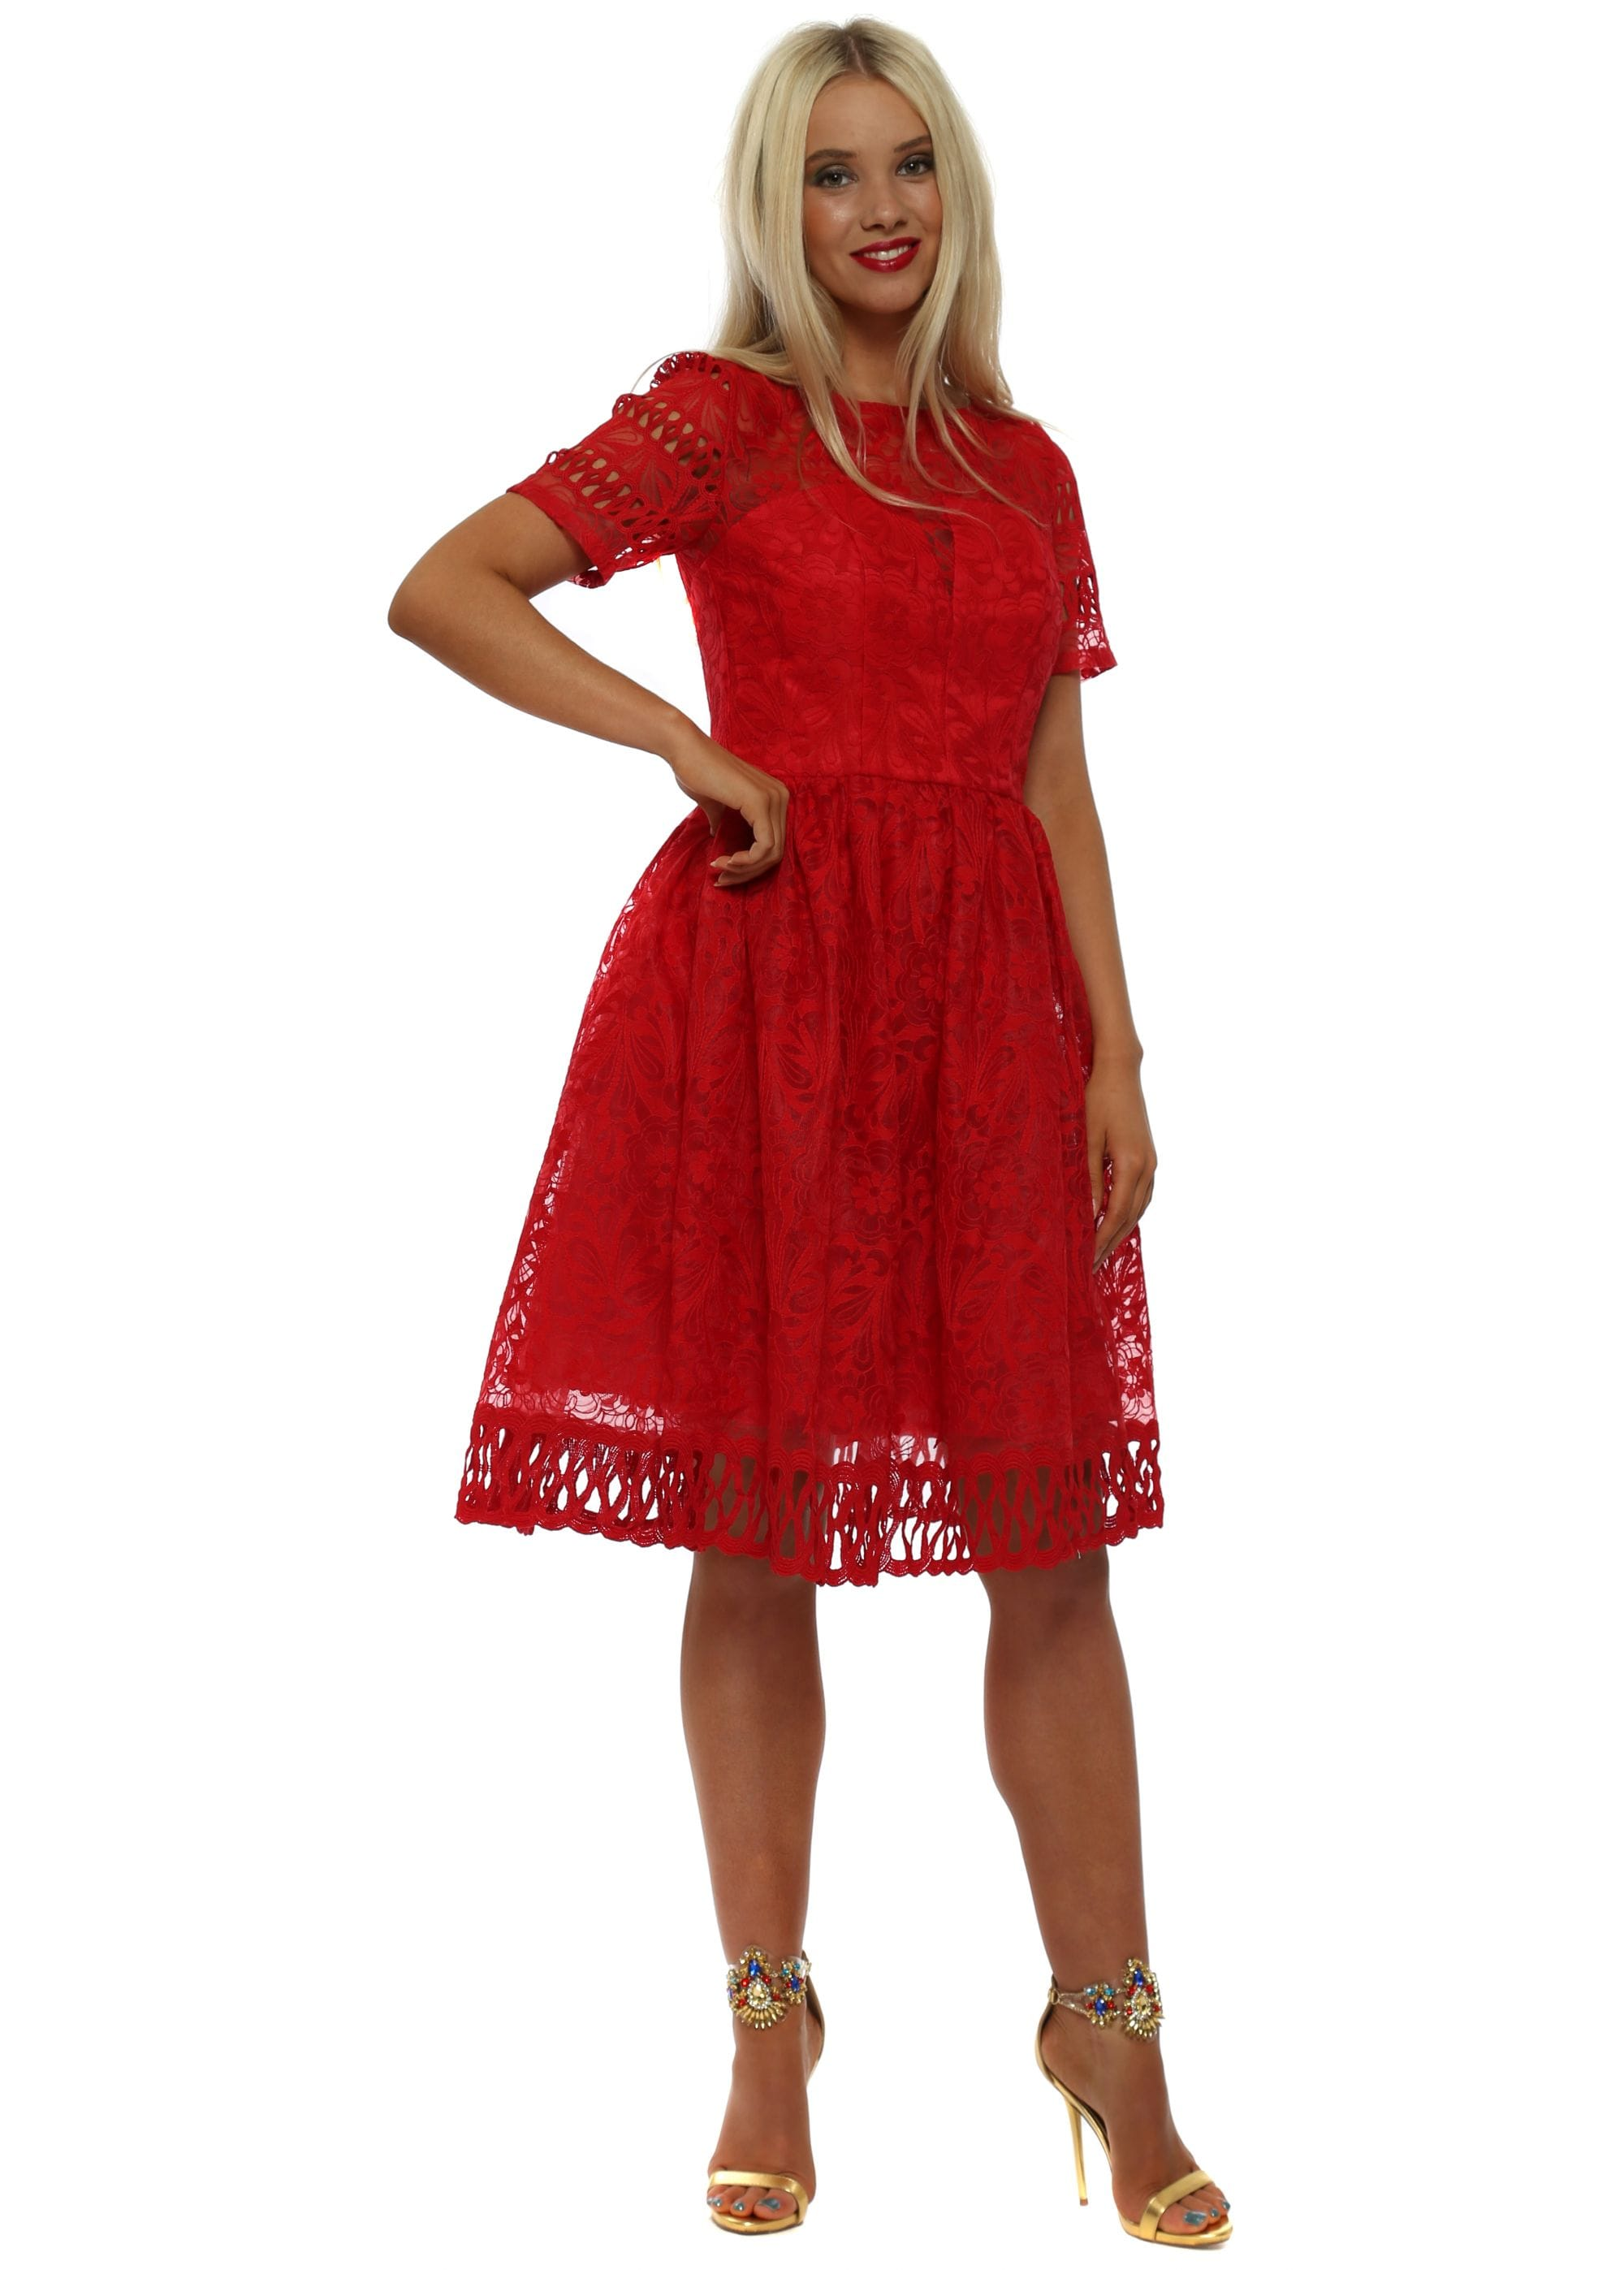 f63918ccd3cc Chi Chi Red Crochet Lace Skater Dress